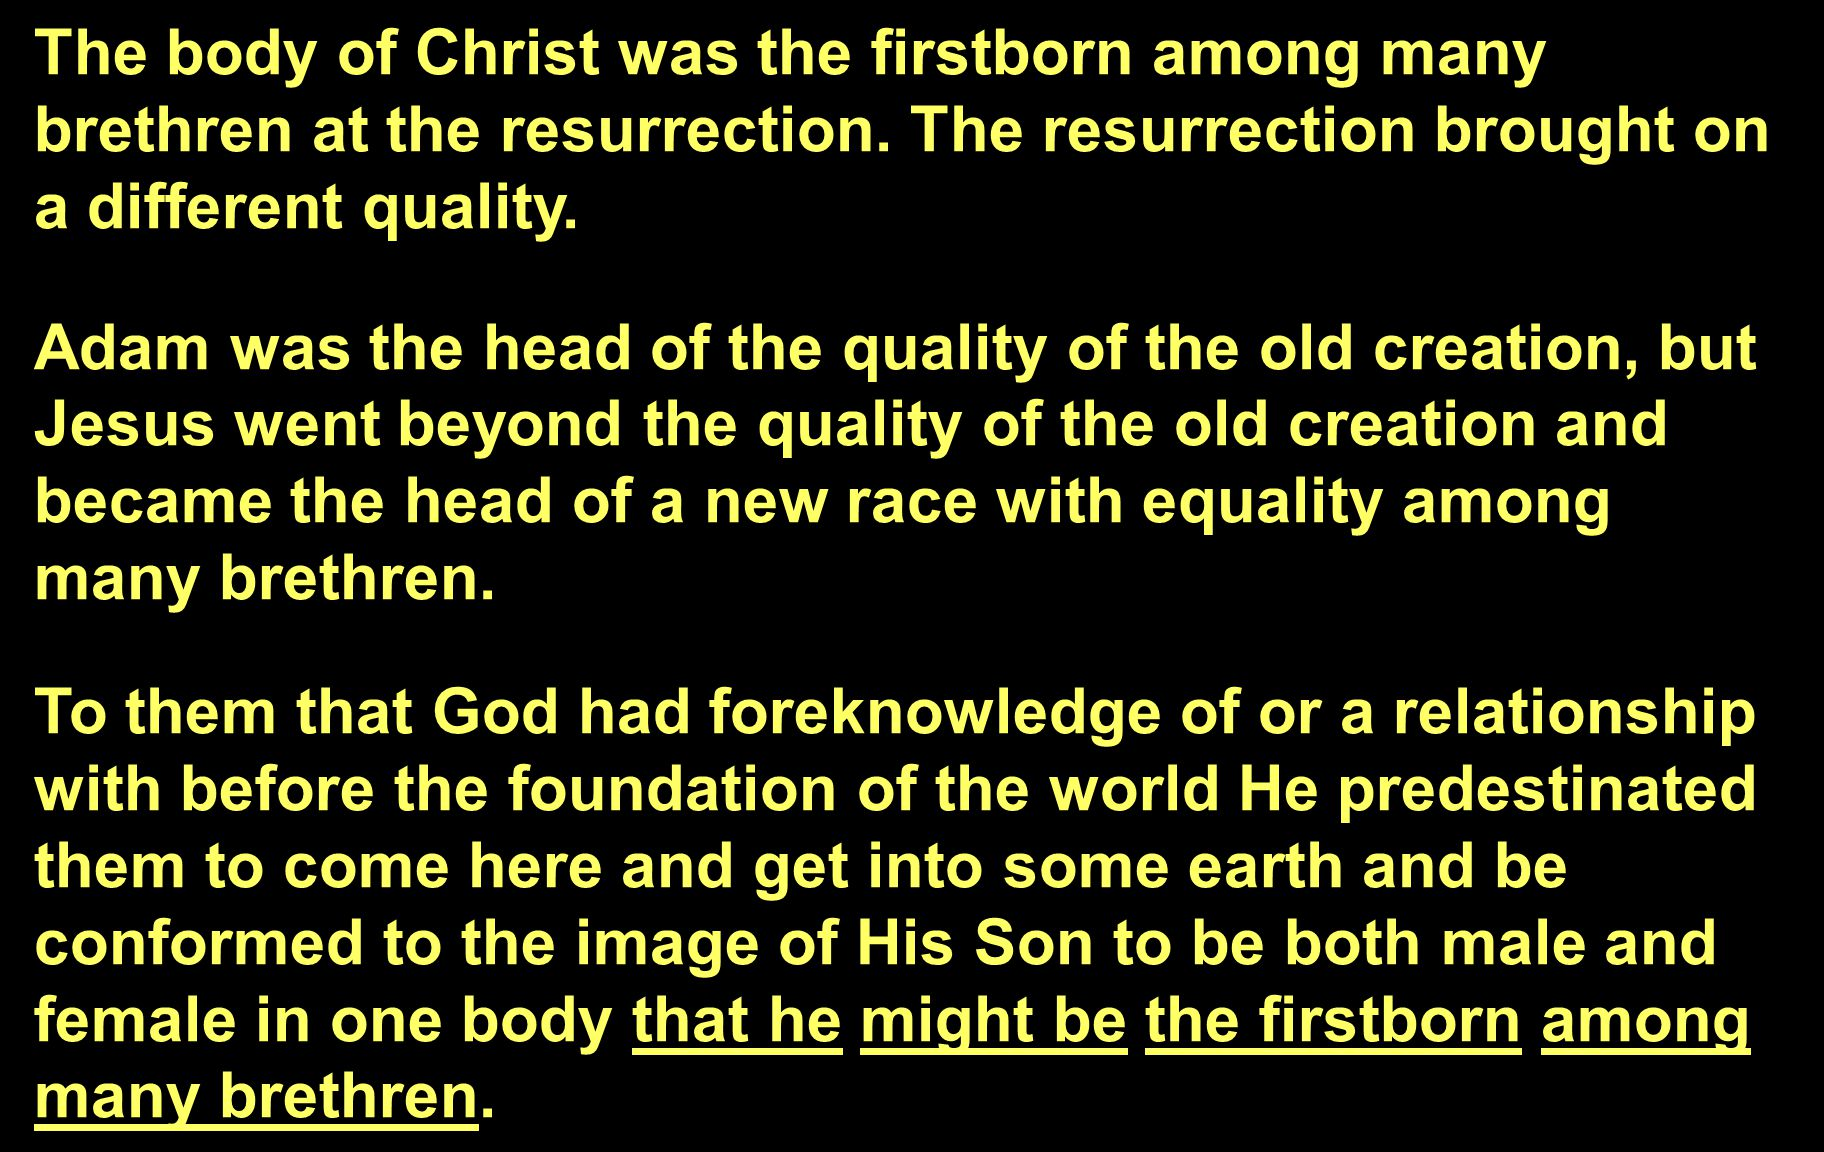 The body of Christ was the firstborn among many brethren at the resurrection. The resurrection brought on a different quality. Adam was the head of th